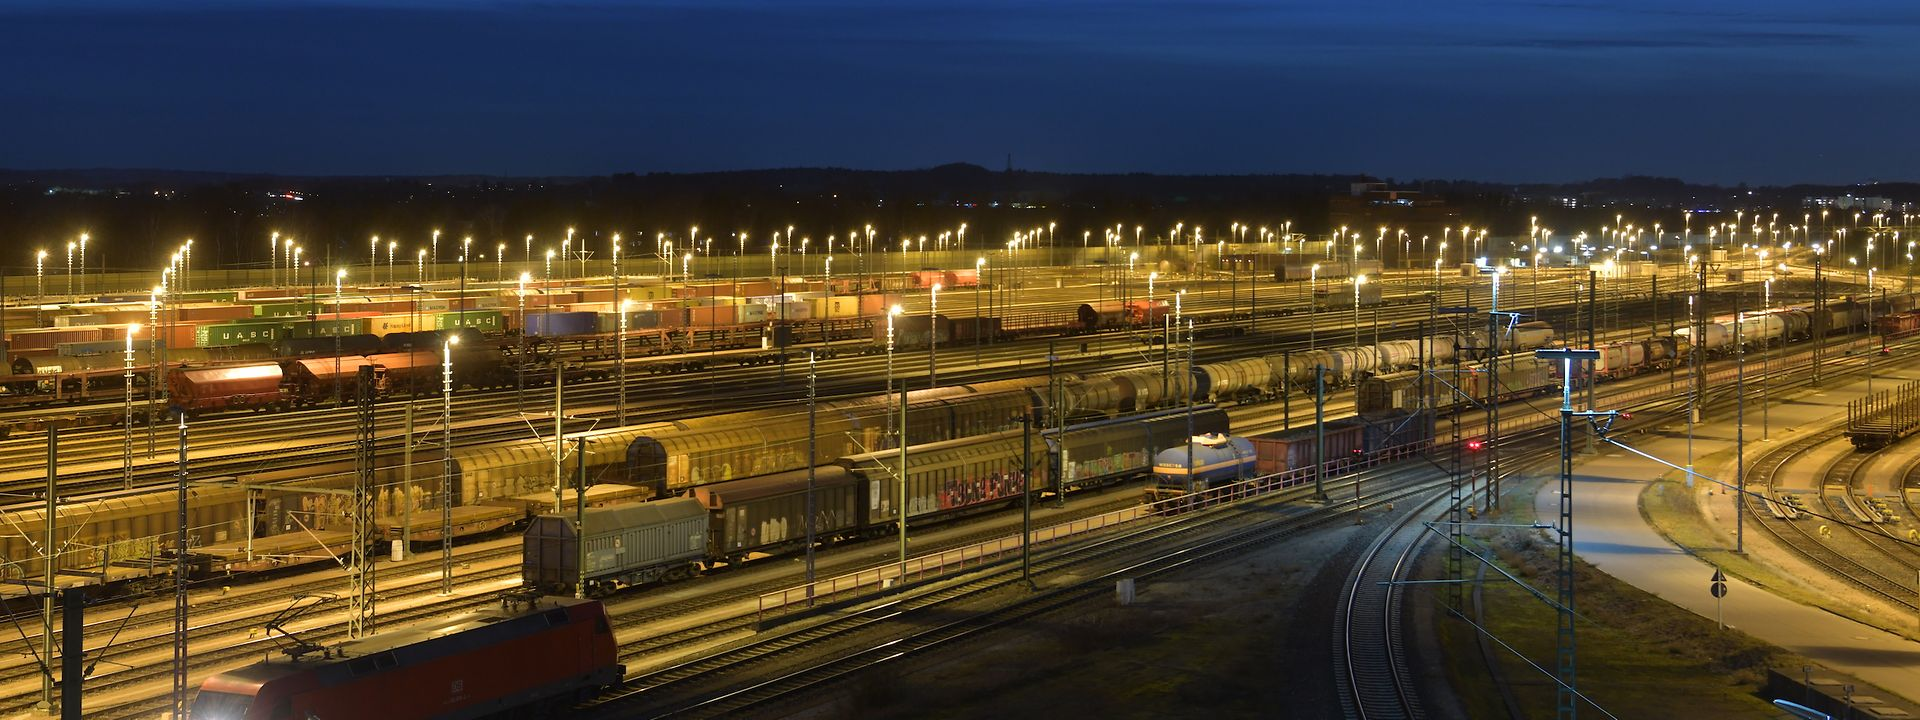 Railway tracks at night DB Cargo